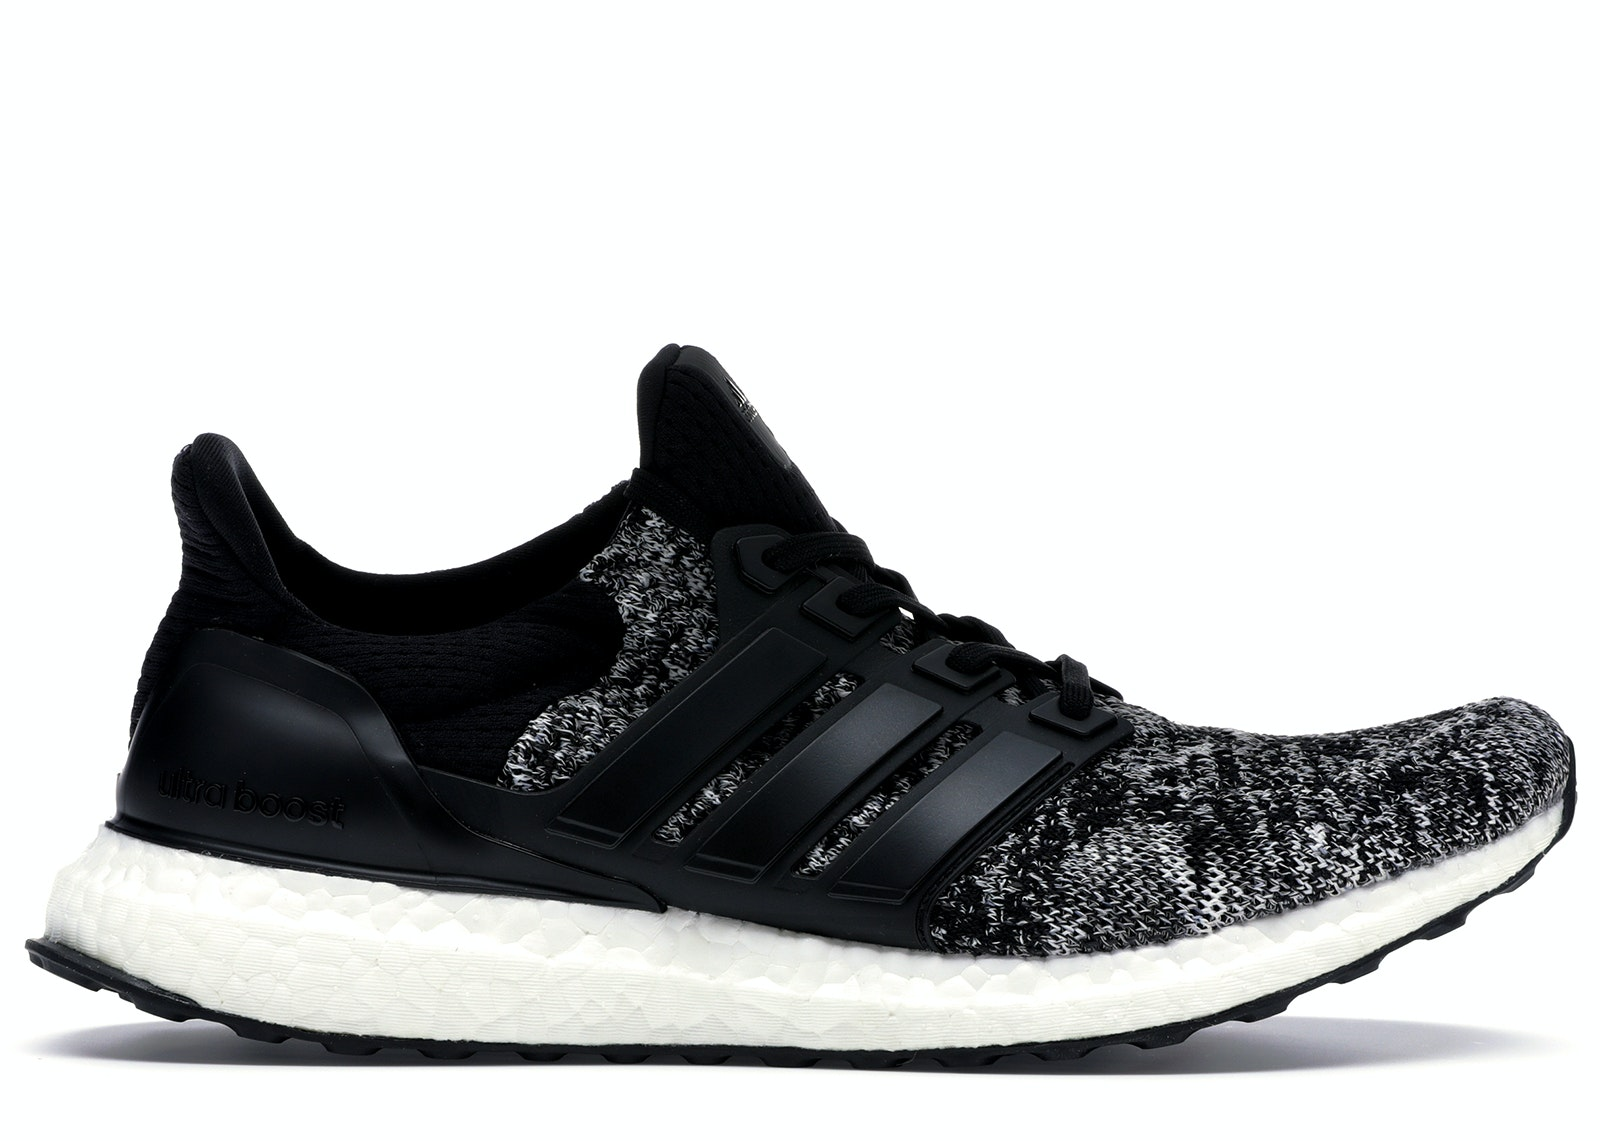 adidas Ultra Boost 1.0 Reigning Champ